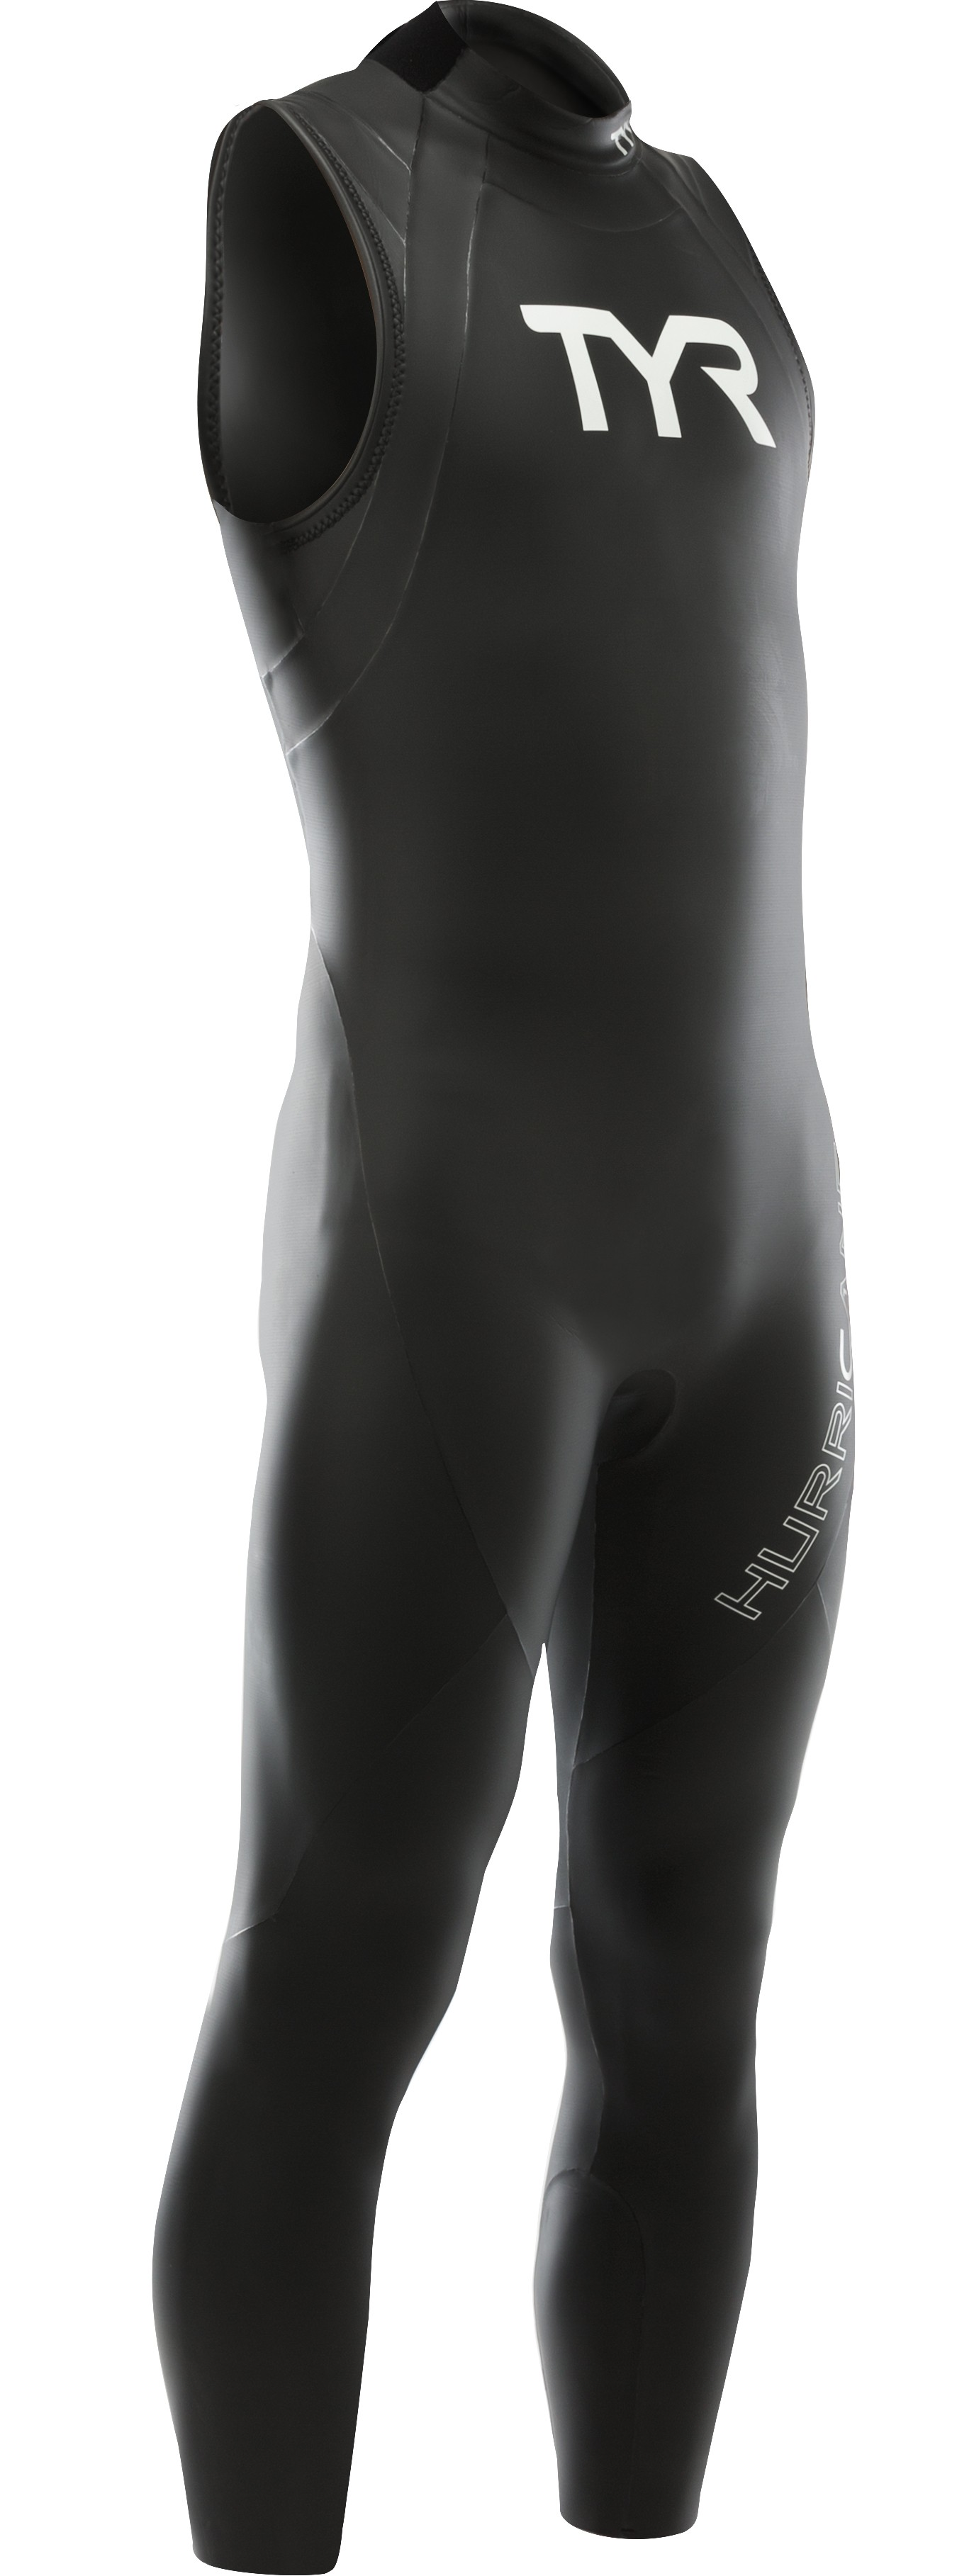 Tyr Hurricane Cat  Wetsuit Review